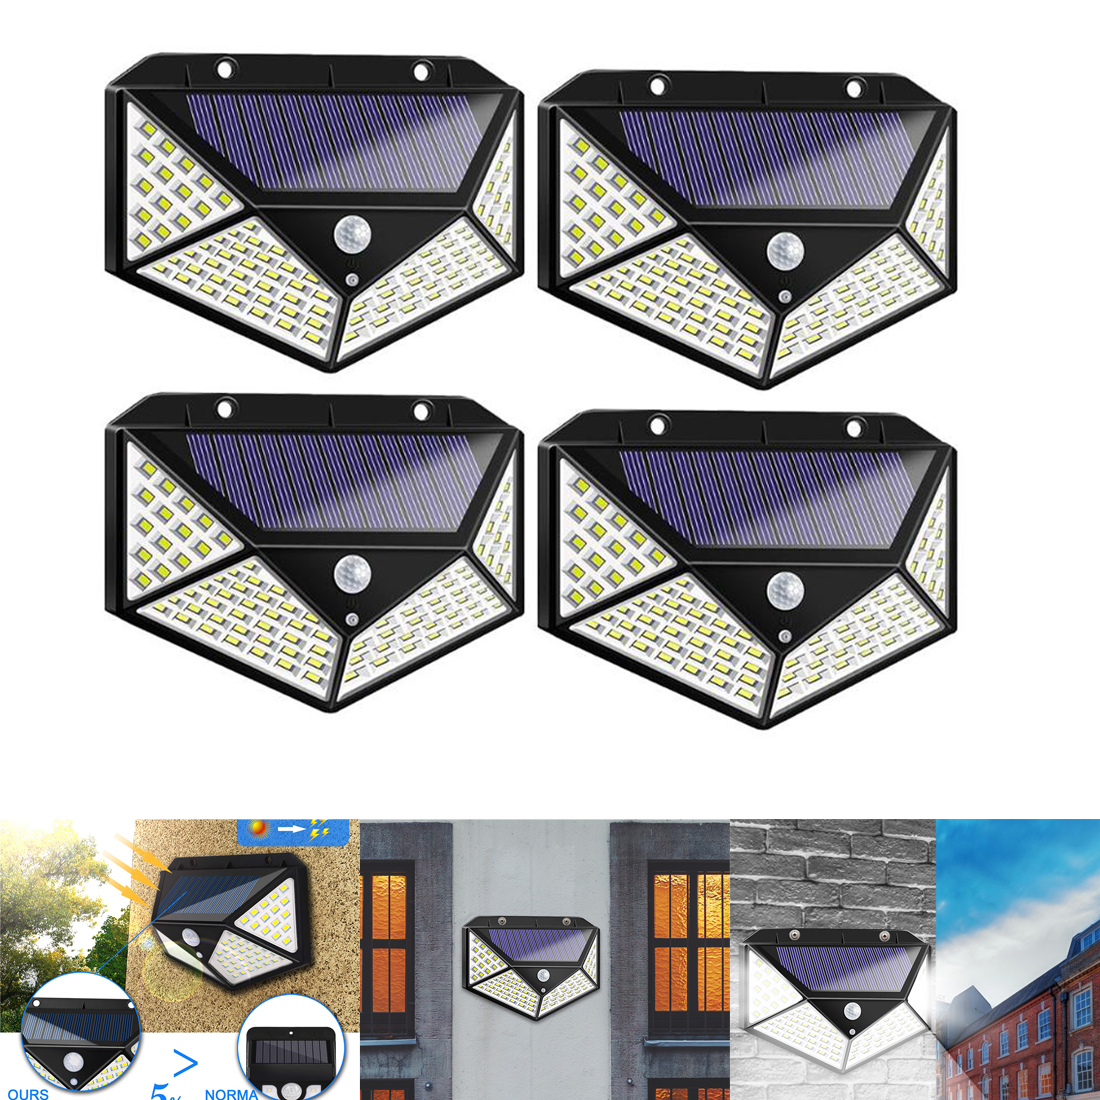 1/2/4pcs Outdoor 100 LED Solar Light Waterproof 4-side Sunlight Solar Powered Lamp PIR Motion Sensor Wall Light For Garden Decor